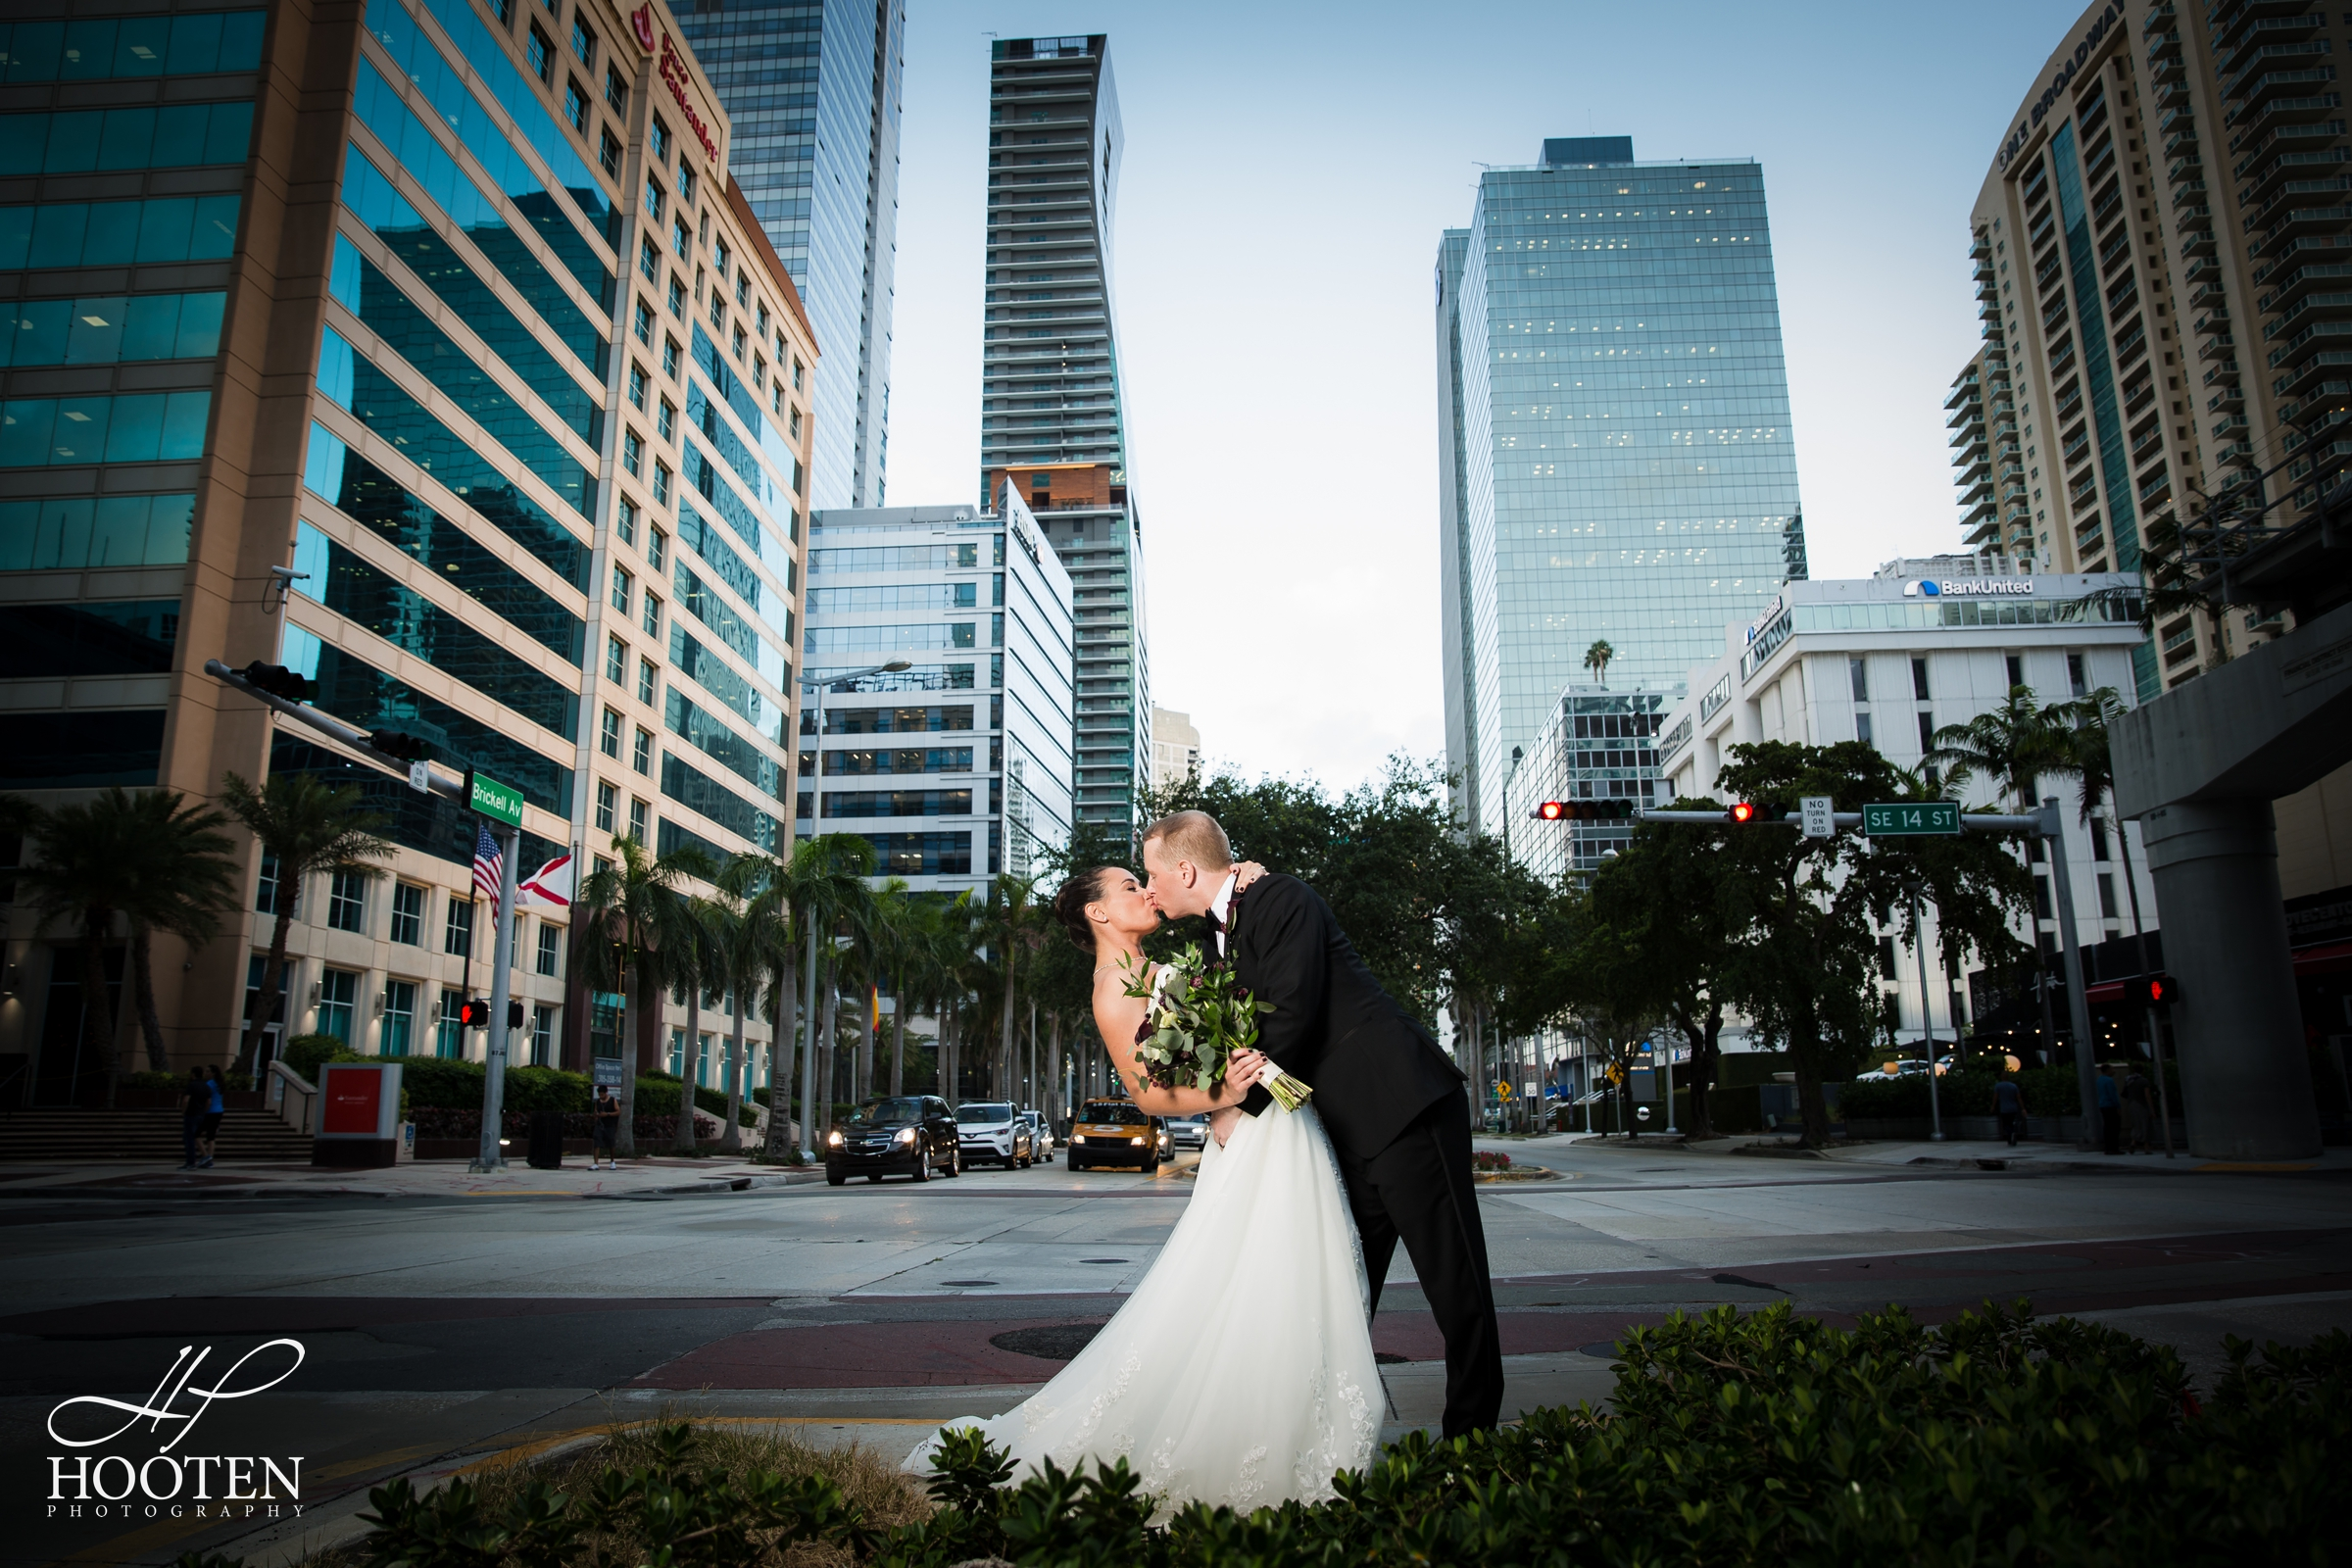 062.Conrad-Miami-Hotel-Wedding-Hooten-Photography.jpg